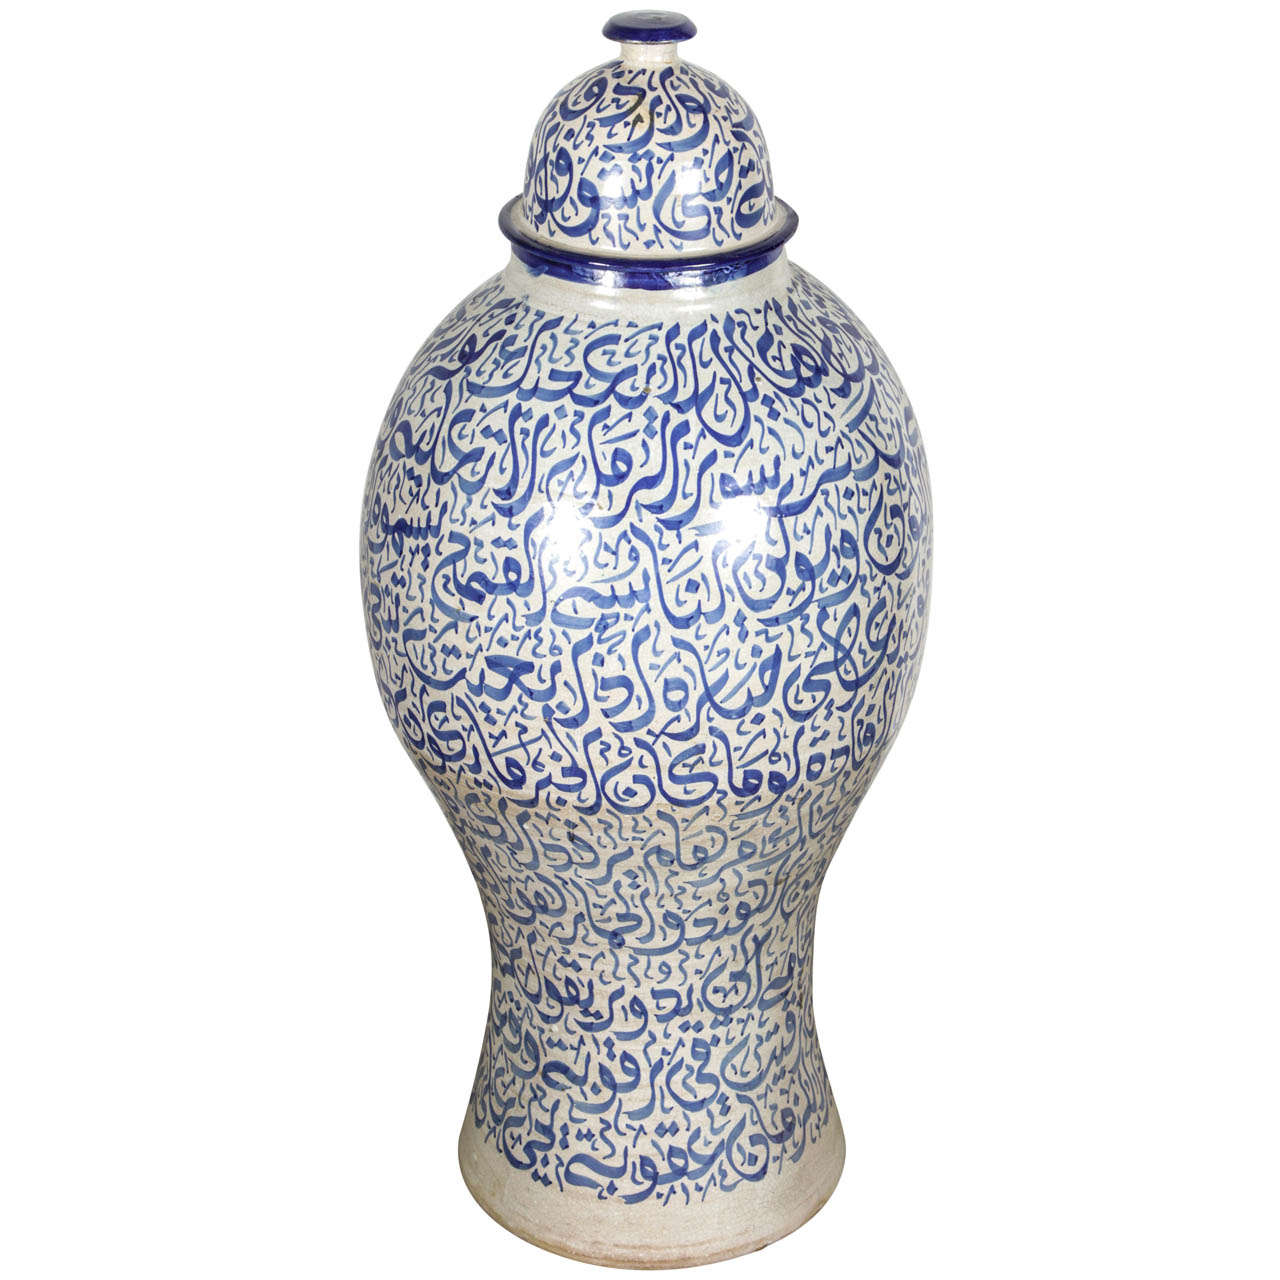 Large moroccan calligraphic blue urn 3 feet high for sale at 1stdibs large moroccan calligraphic blue urn 3 feet high for sale reviewsmspy